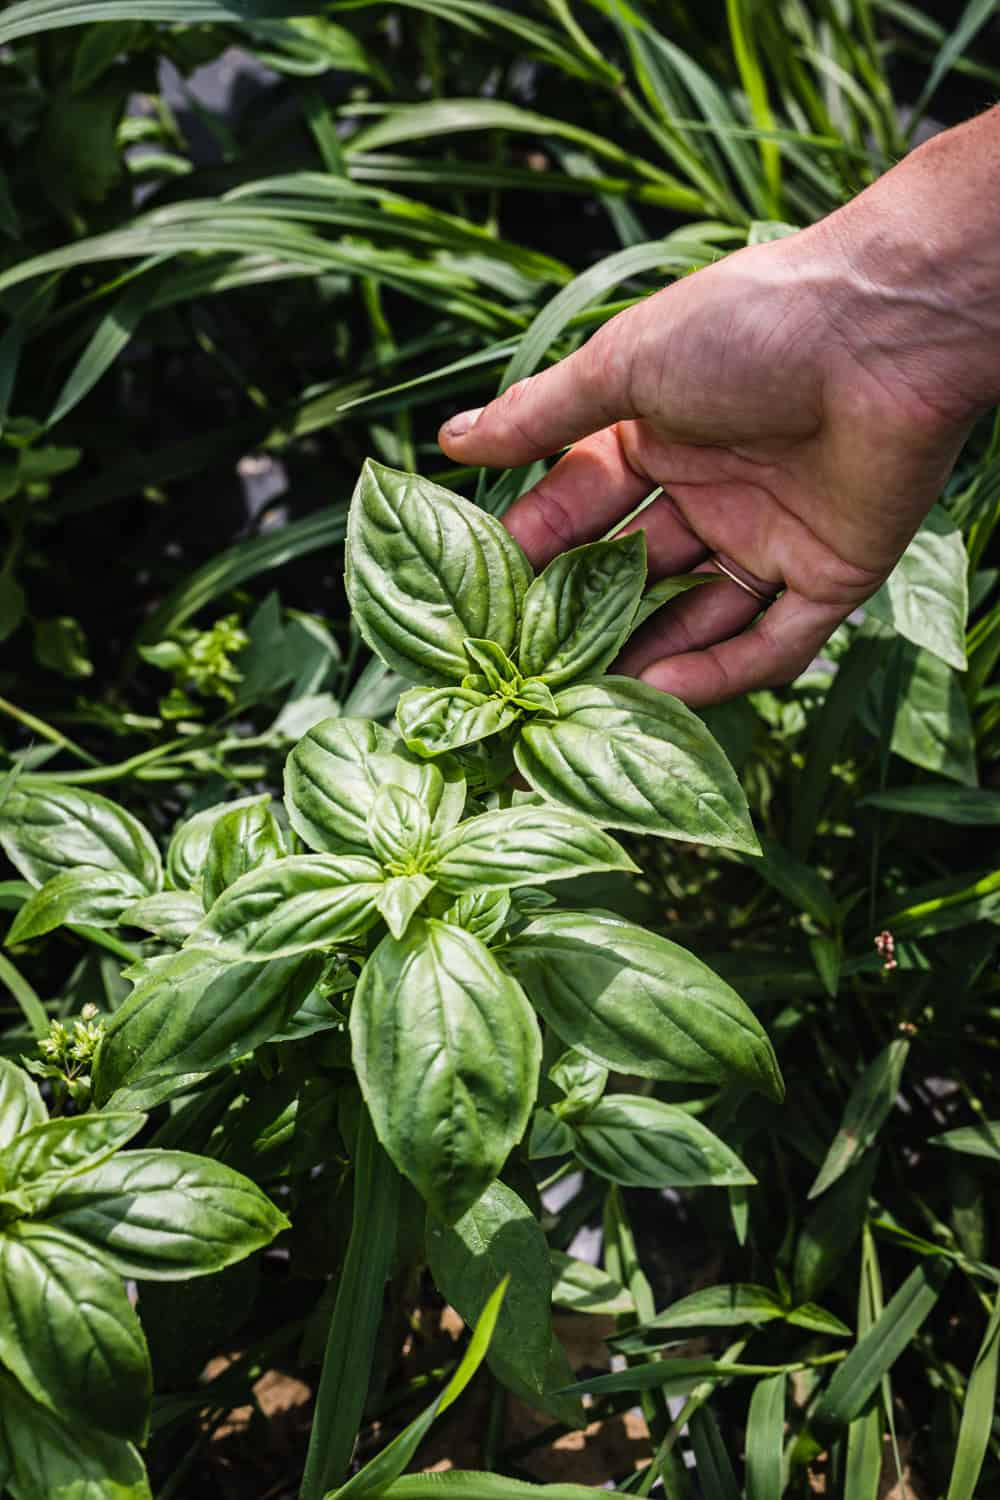 Fresh basil being harvested at Amber Waves Farms in the Hamptons